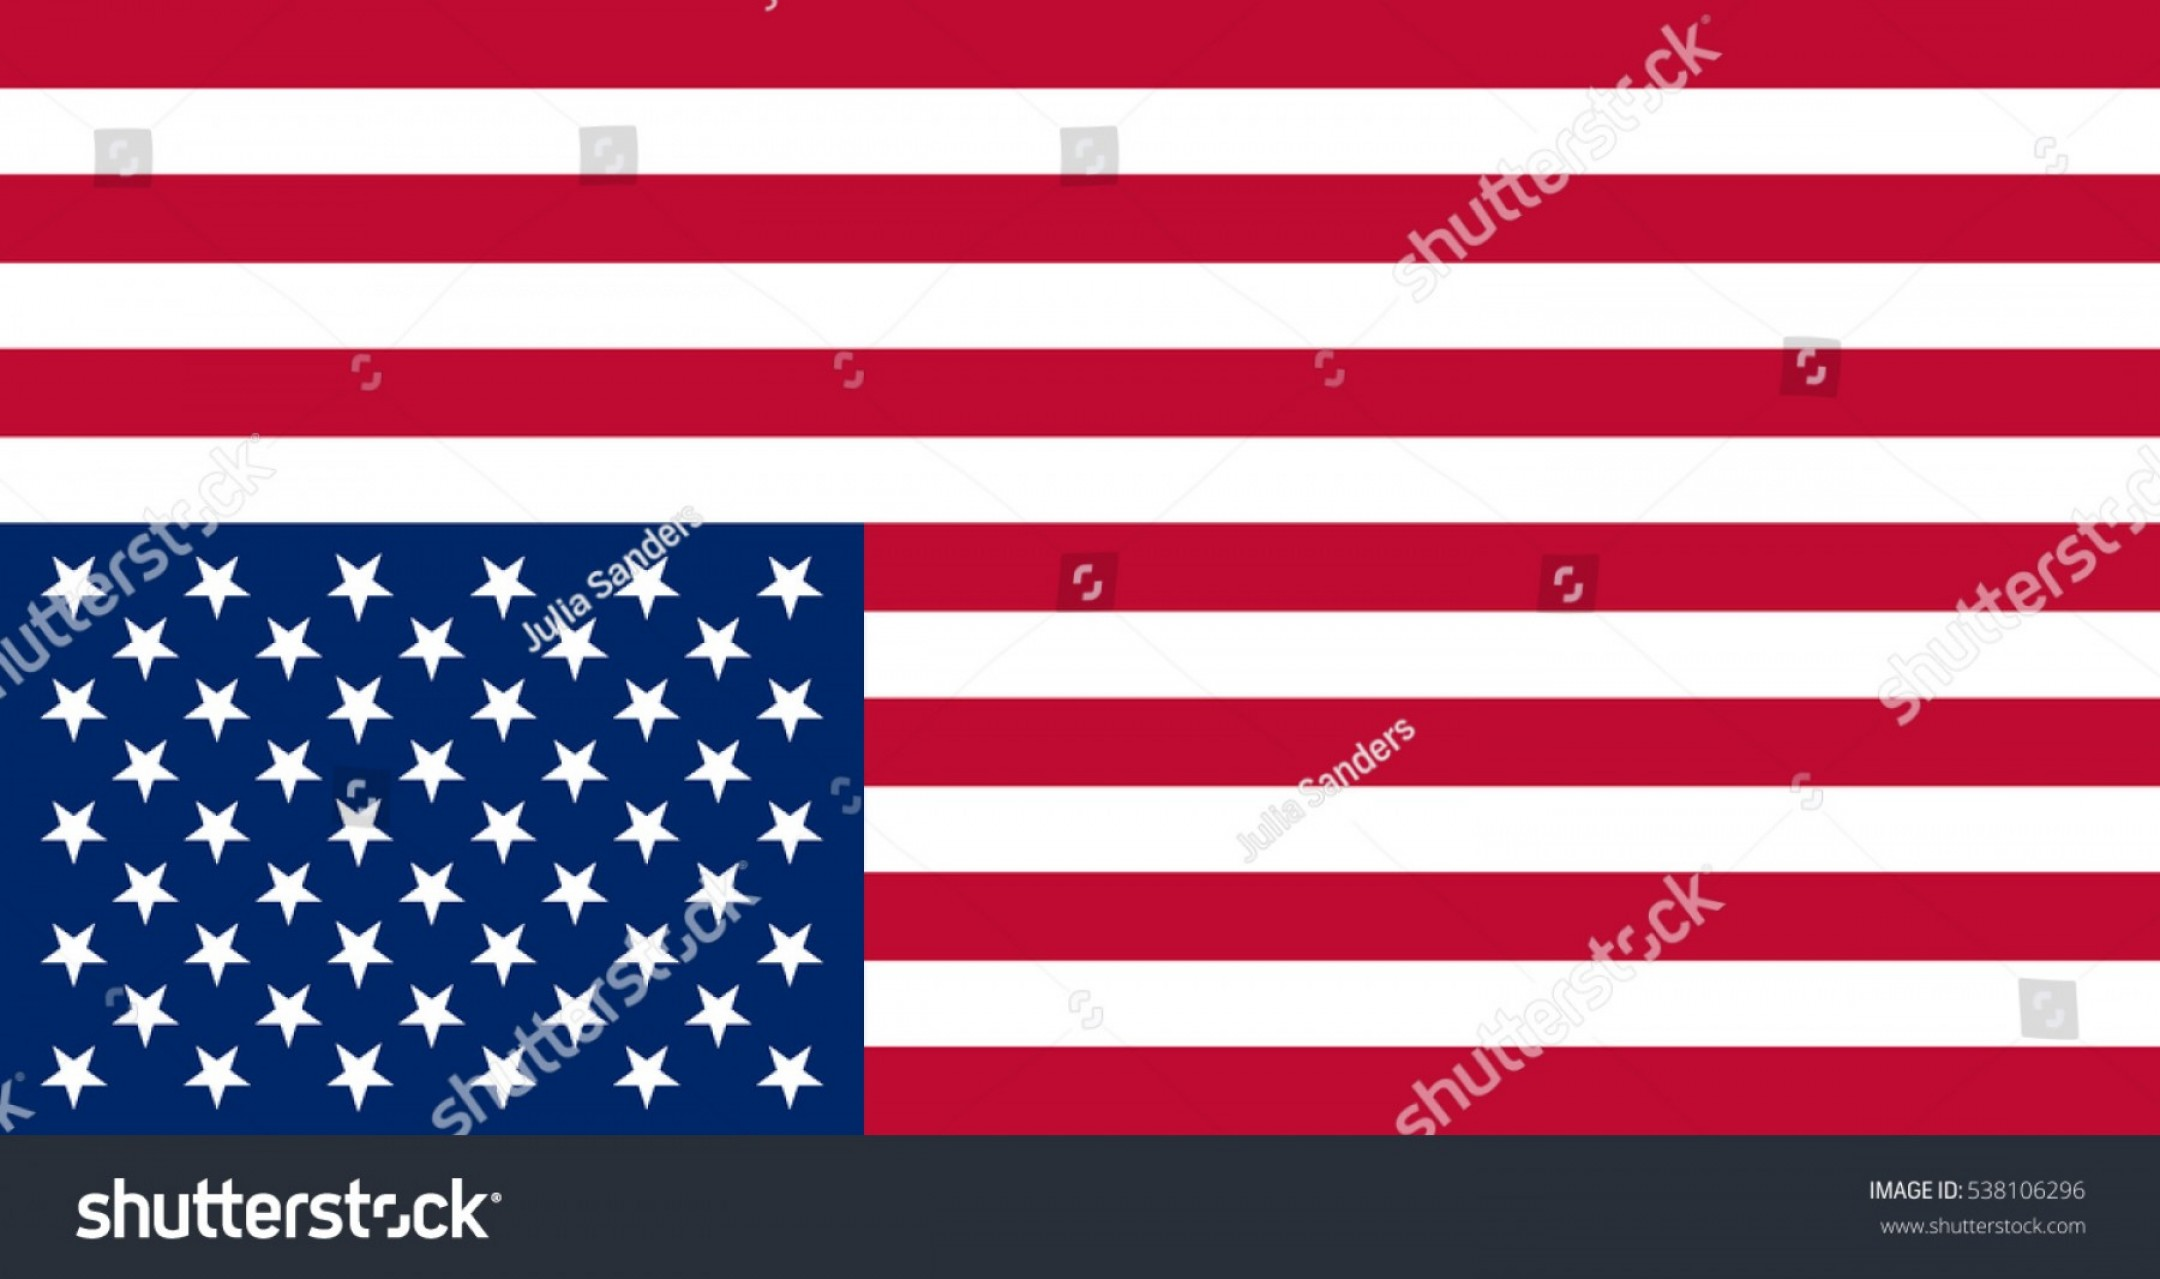 Thin Red Line Distressed Flag Vector: Inverted American Flag Distress Signal Vector